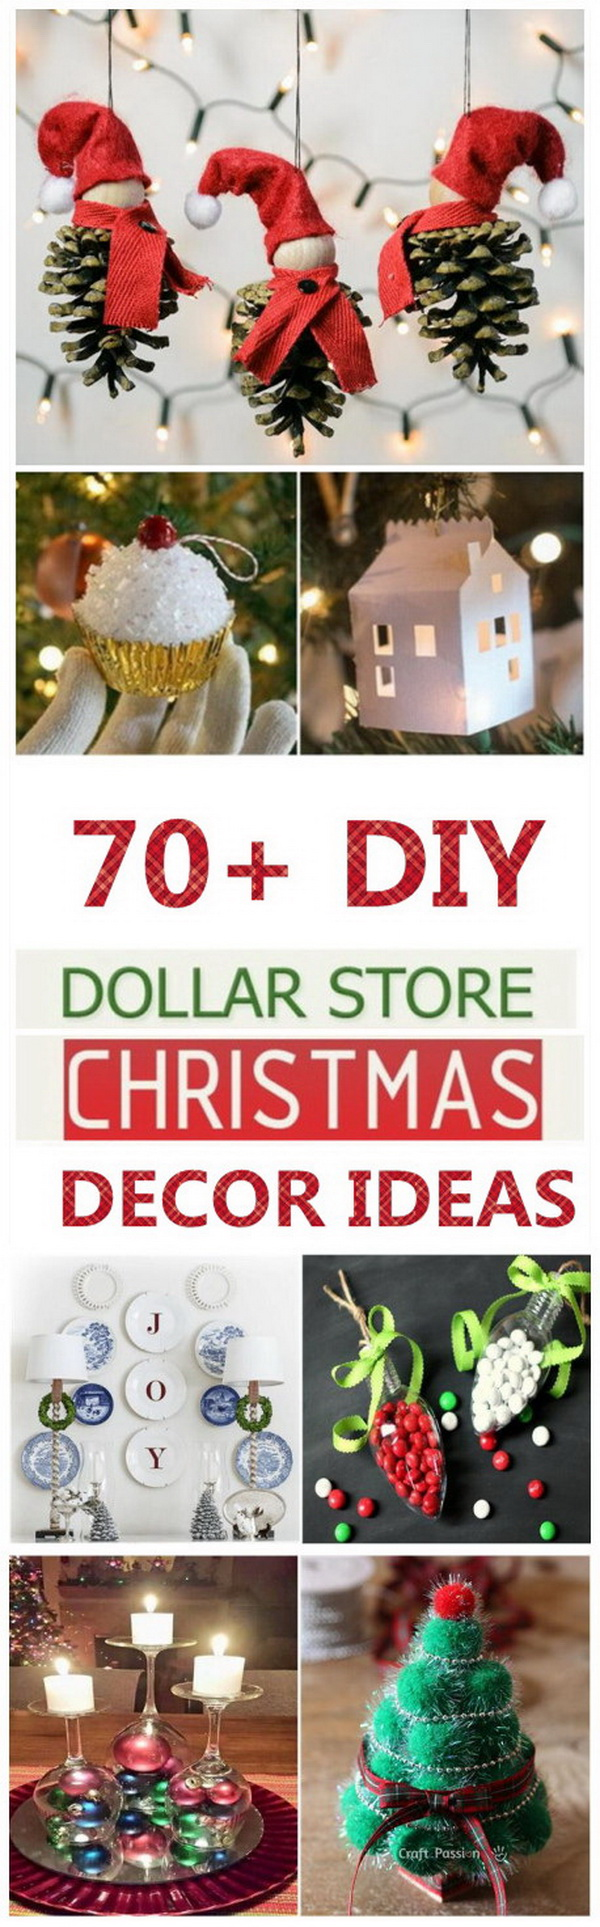 70 diy dollar store christmas decor ideas christmas is one of the most cheerful